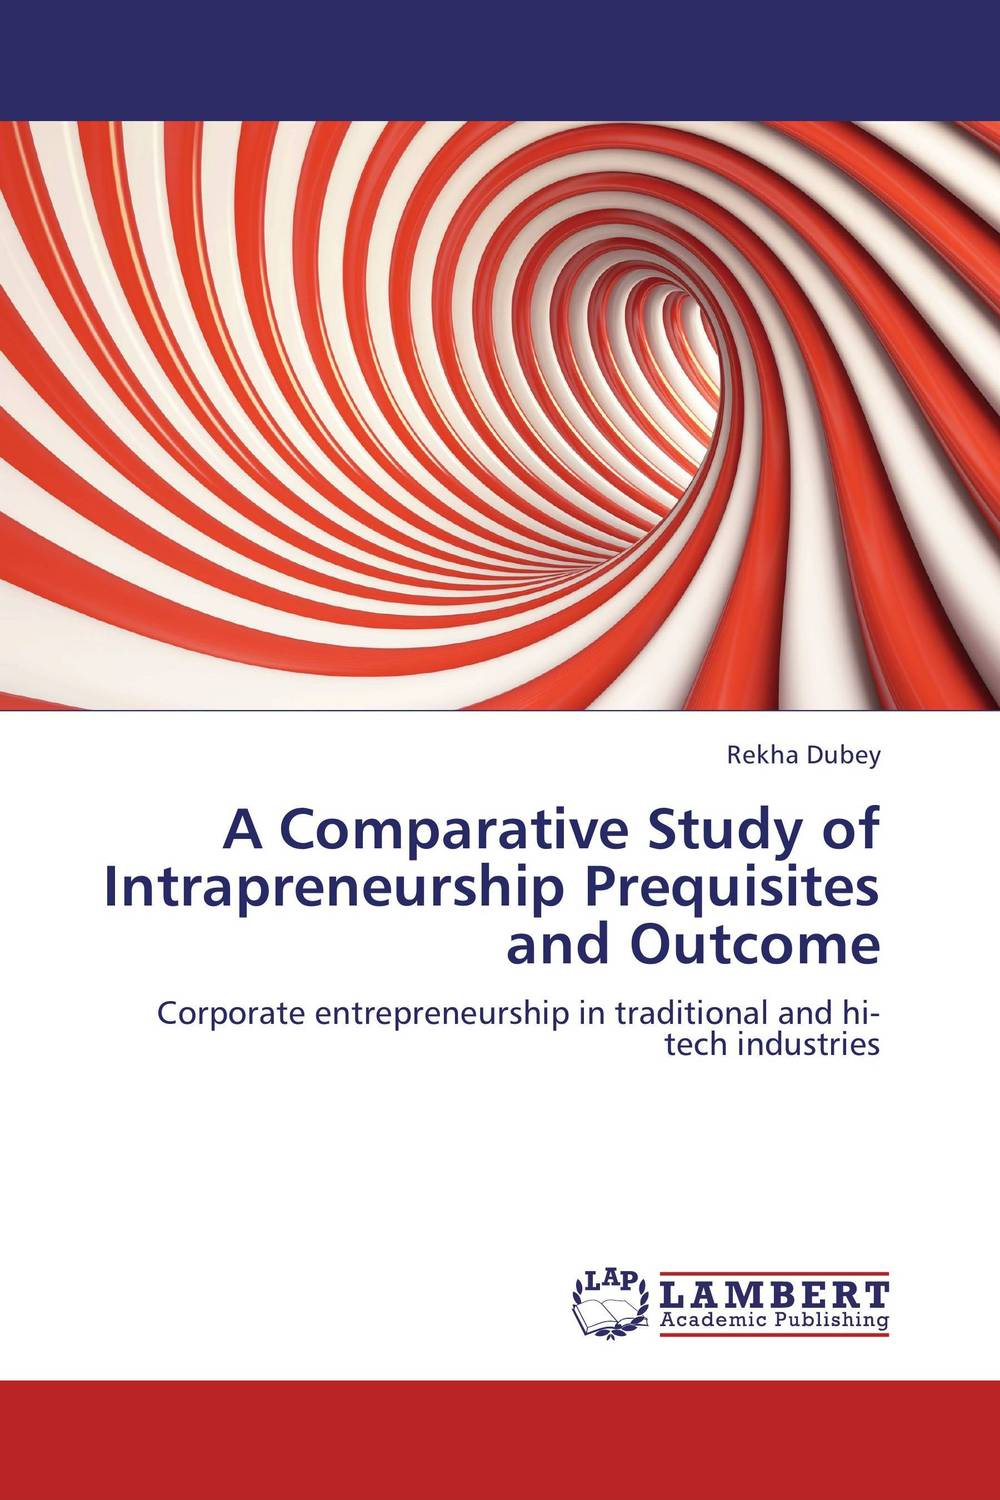 A Comparative Study of Intrapreneurship Prequisites and Outcome